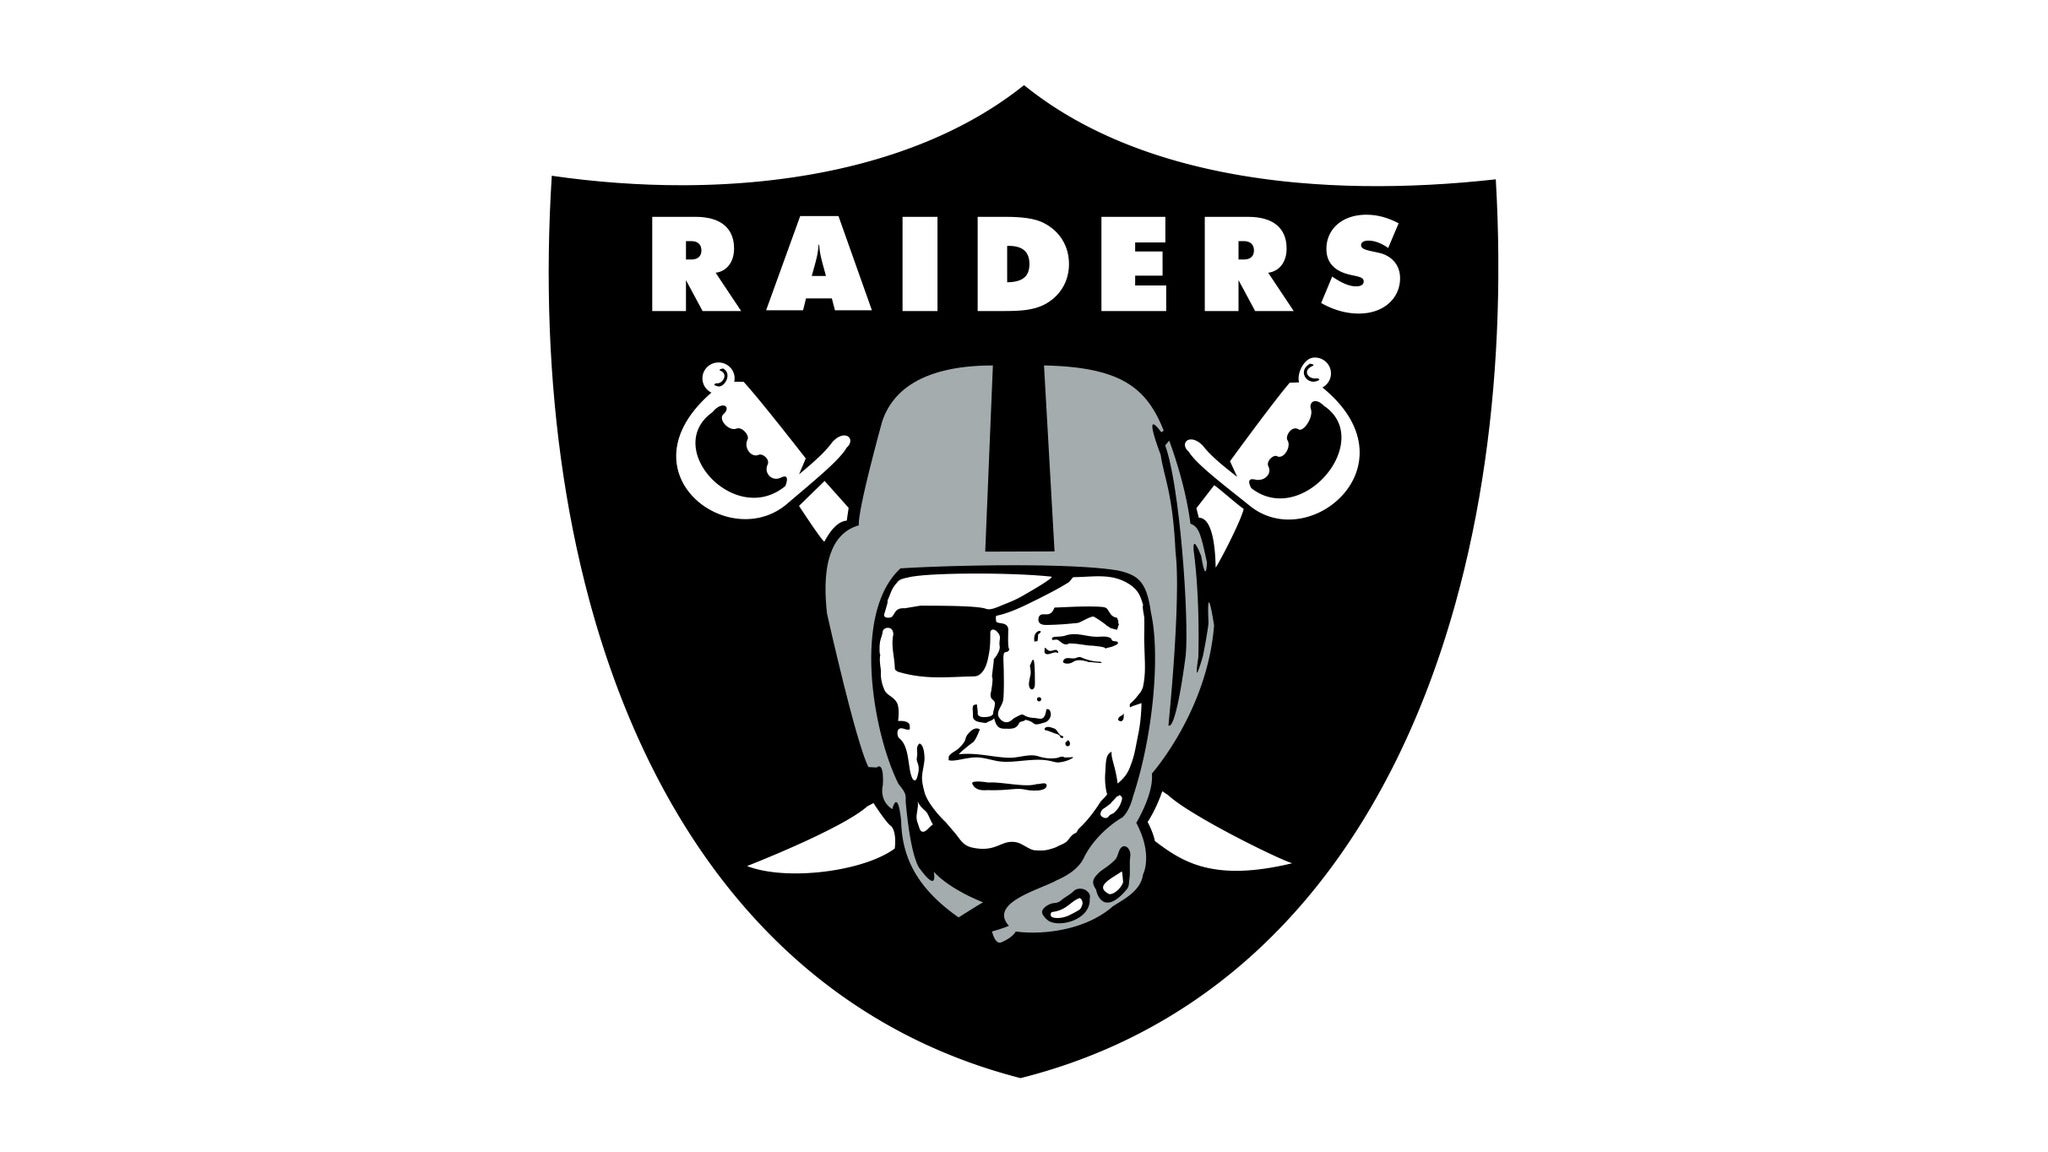 Oakland Raiders vs. San Diego Chargers